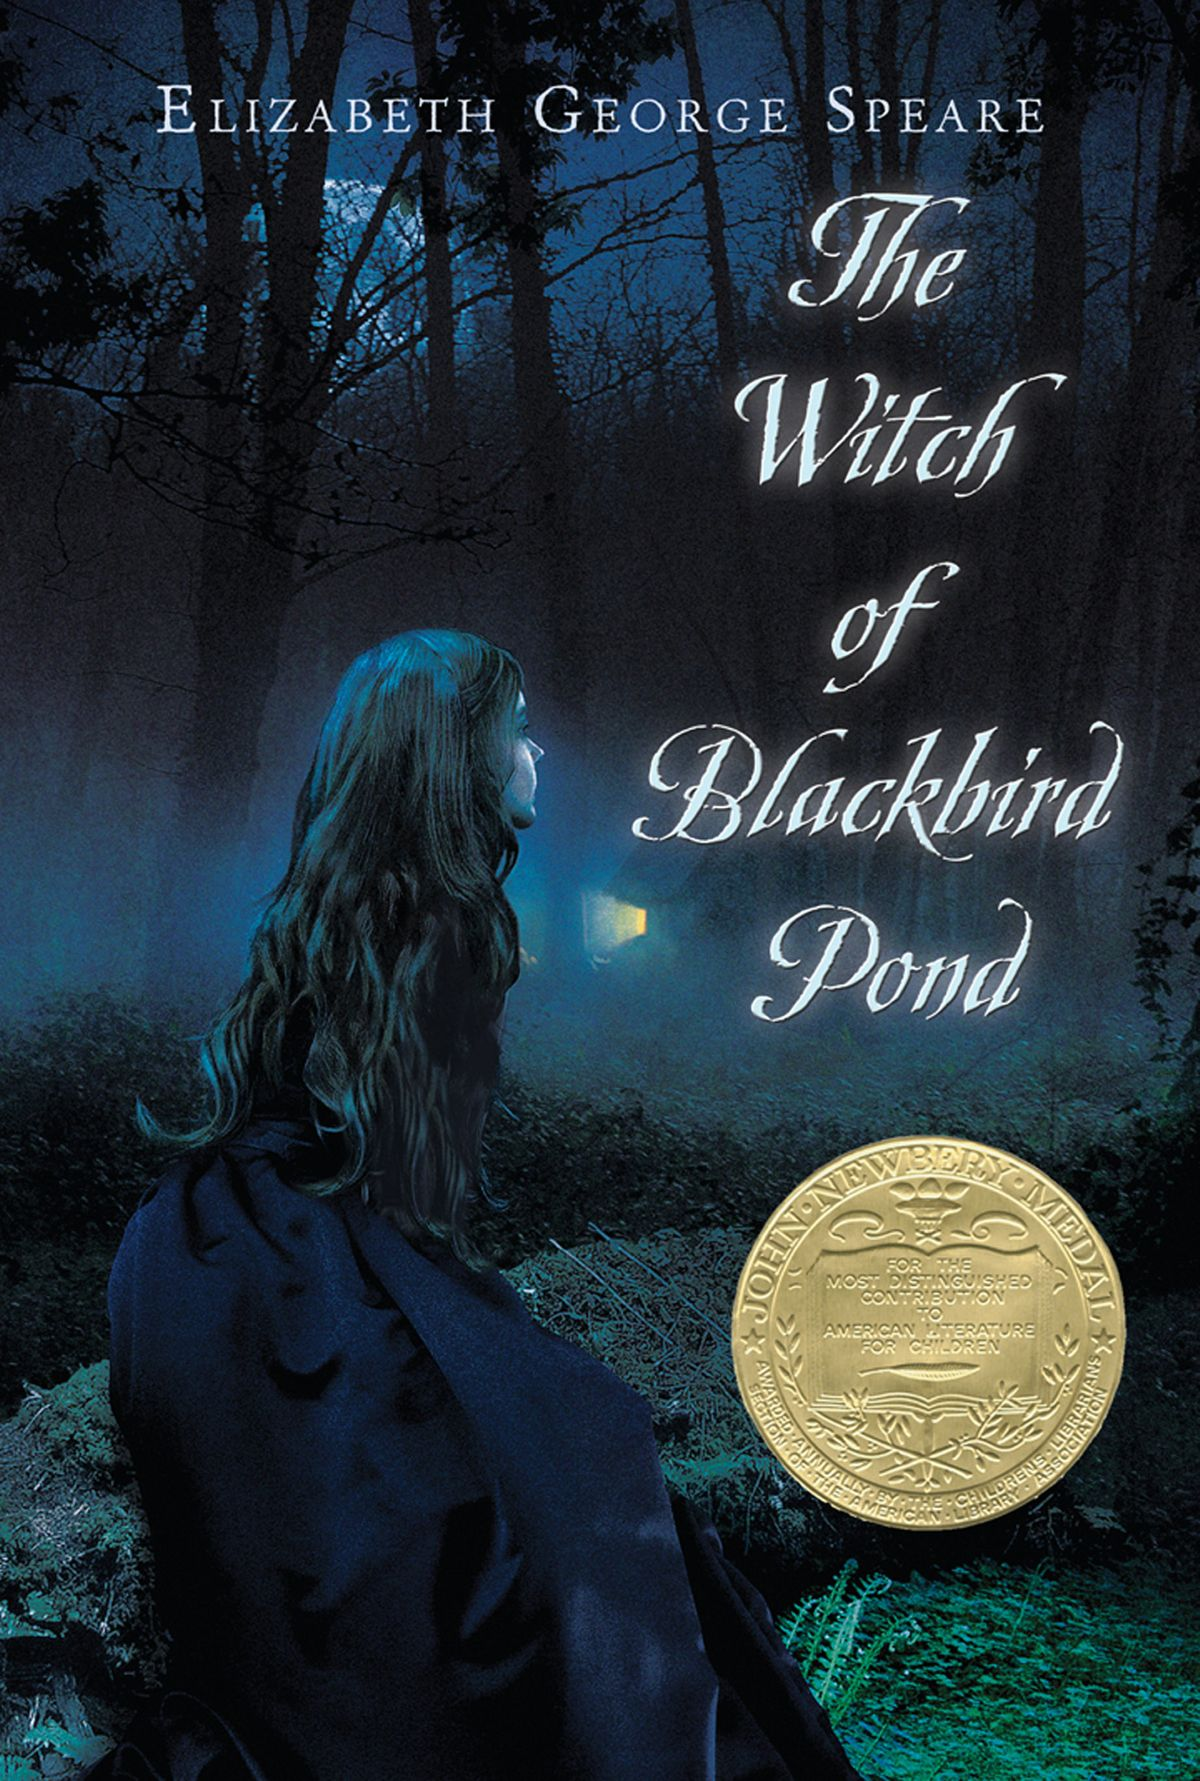 Houghton Mifflin paperback edition of  The Witch of Blackbird Pond